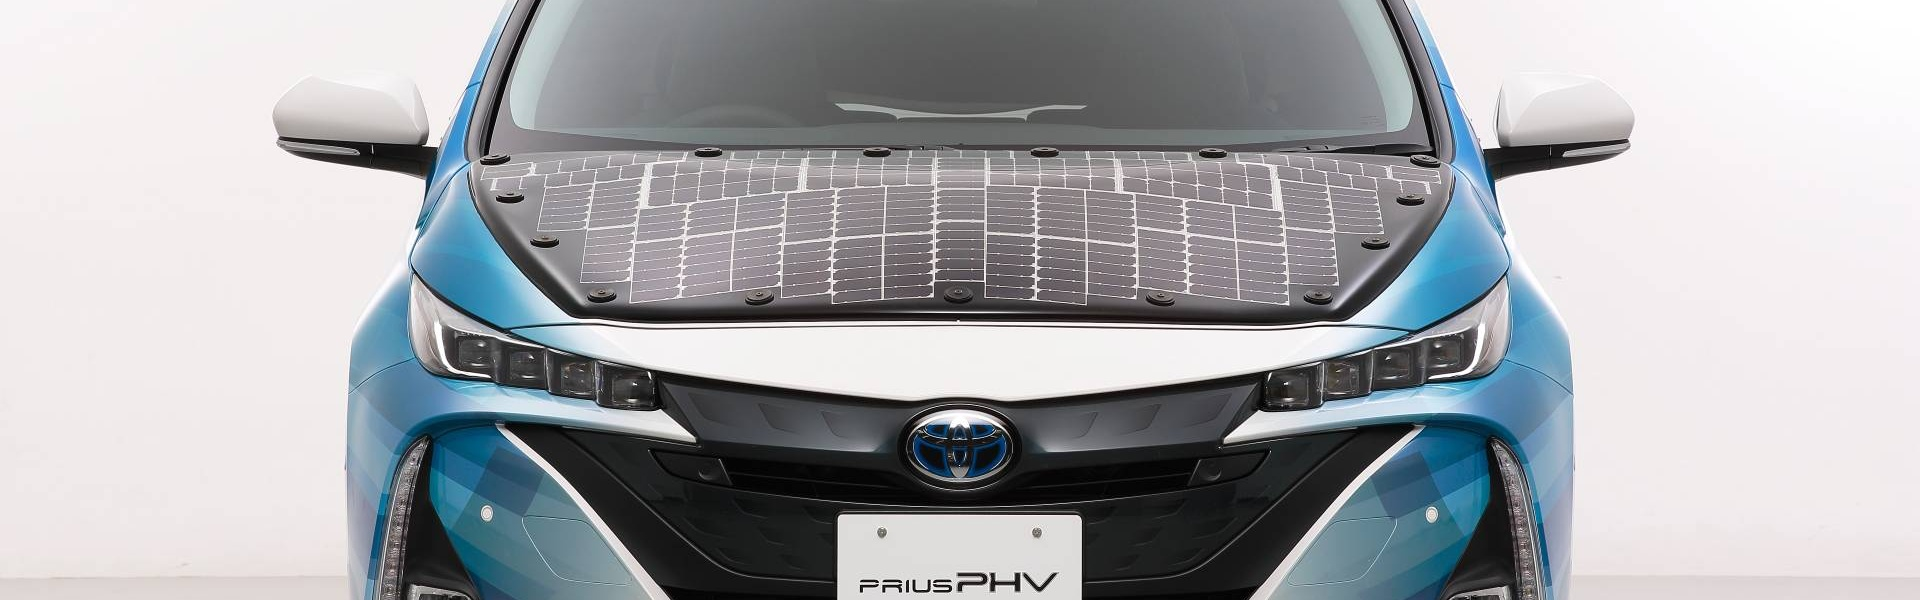 toyota-prius-phv-demo-car-with-solar-panels-1.jpg